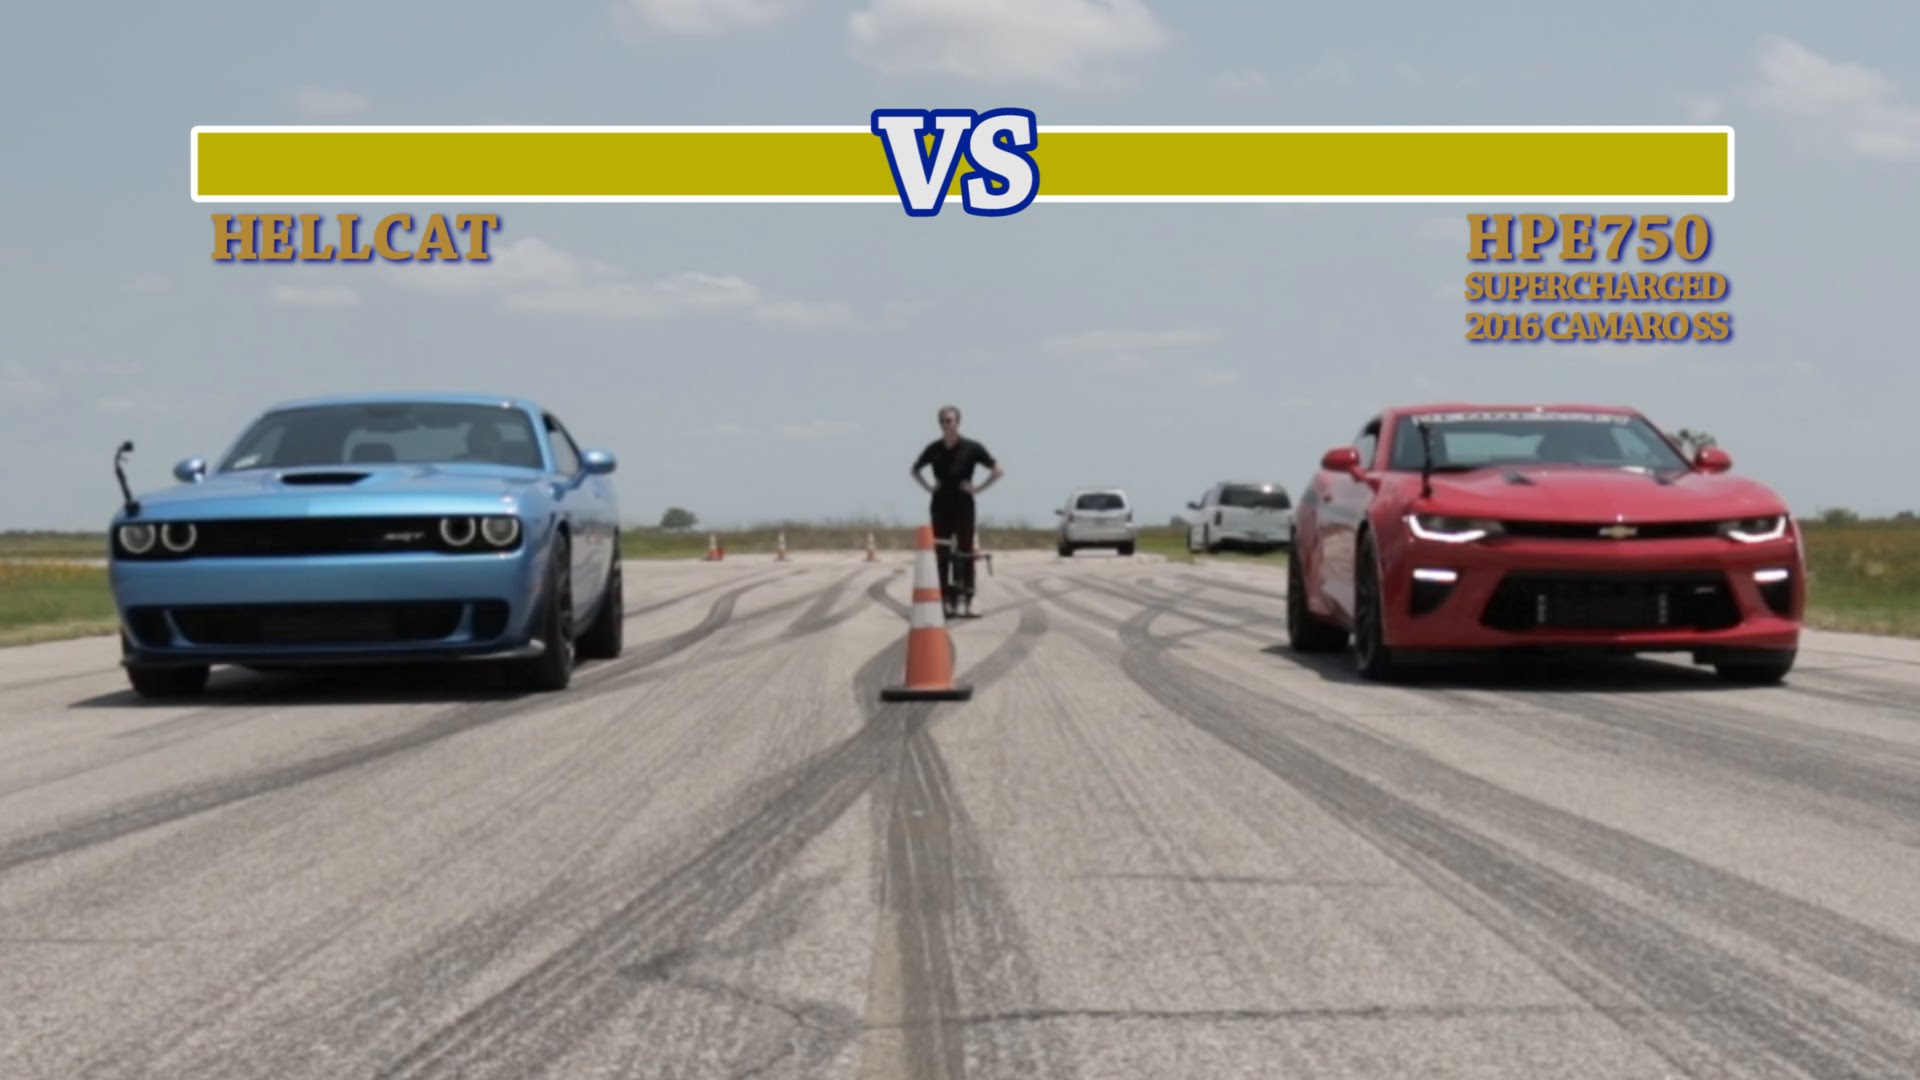 Challenger Hellcat Vs 751 Hp Hennessey Camaro Ss The Funny Street Fighter Take